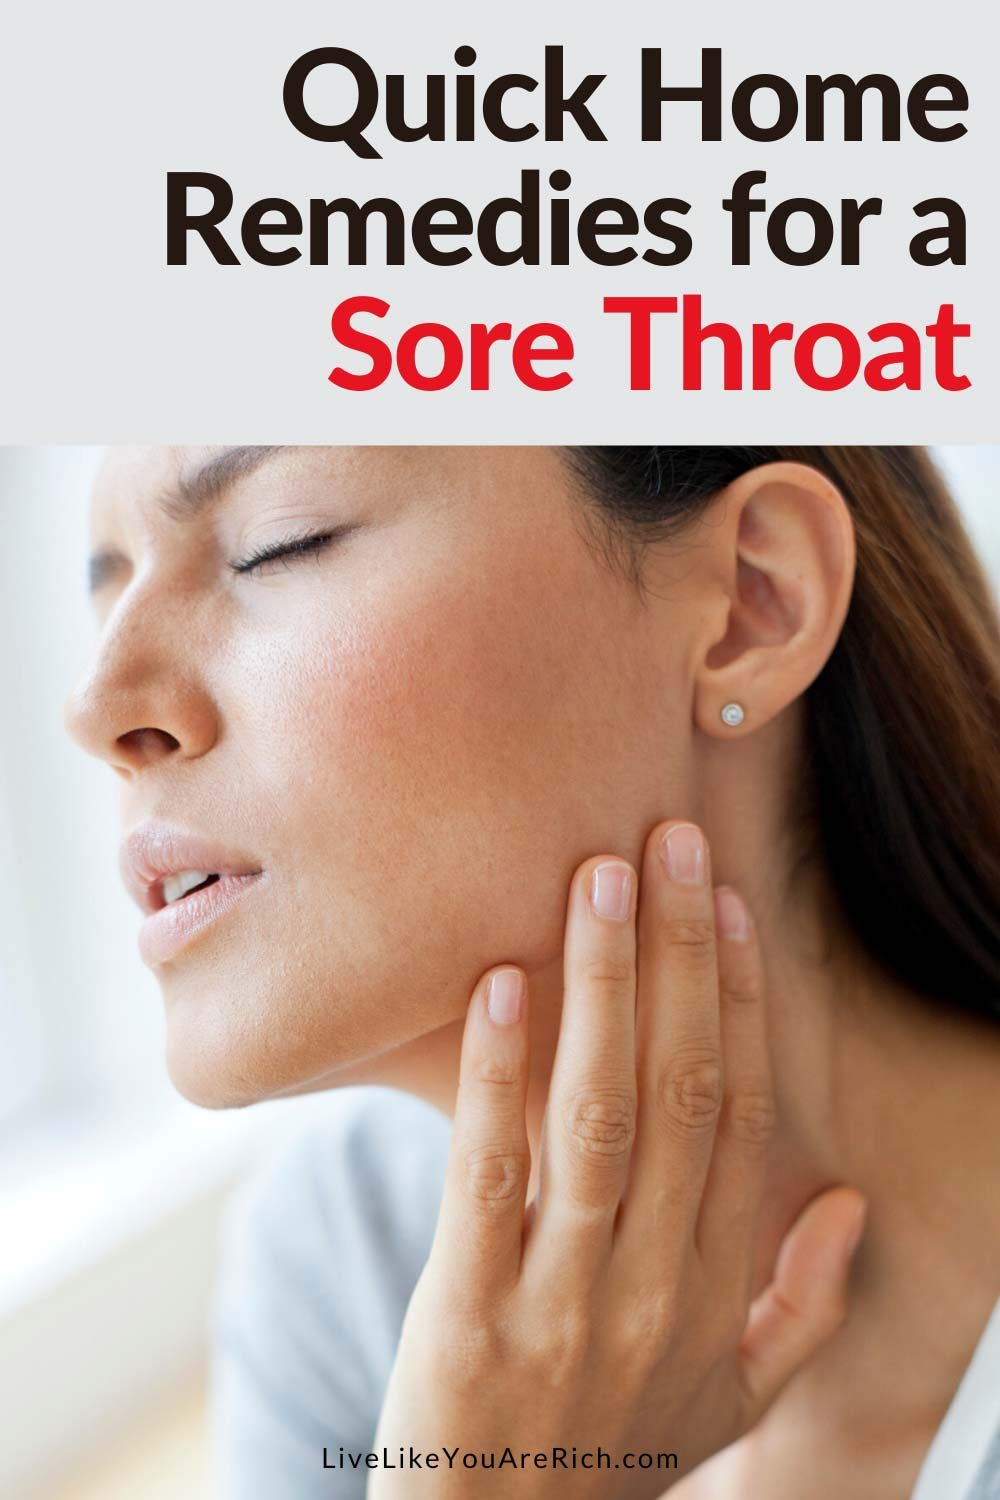 How to Quickly and Efficiently Soothe and Heal a Sore Throat great tips on what to try and 1 quick tip that really helps soothe and take away the pain! Gotta try. #sorethroat #remedies #naturalremedies